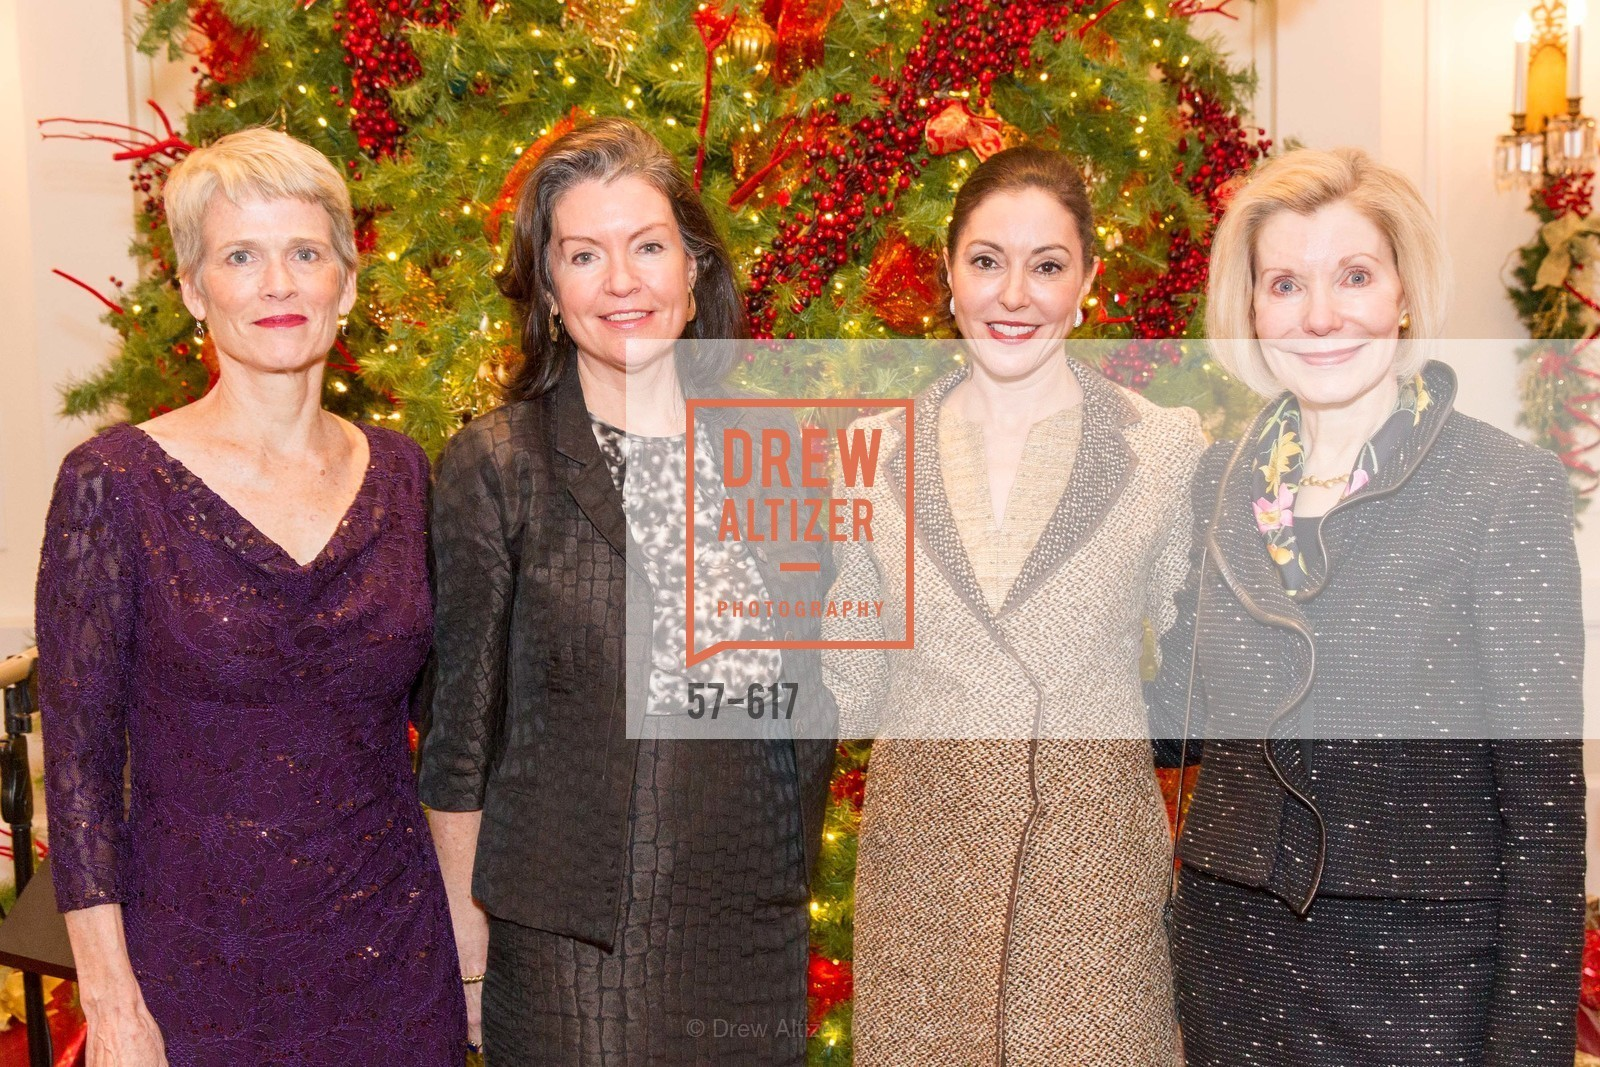 Lauren Ross, Elizabeth Birka-White, Marybeth Lamotte, Barbara Traisman, Boy's & Girls' Towns of Italy Holiday Luncheon, The Olympic Club. 524 Post Street, December 3rd, 2015,Drew Altizer, Drew Altizer Photography, full-service agency, private events, San Francisco photographer, photographer california